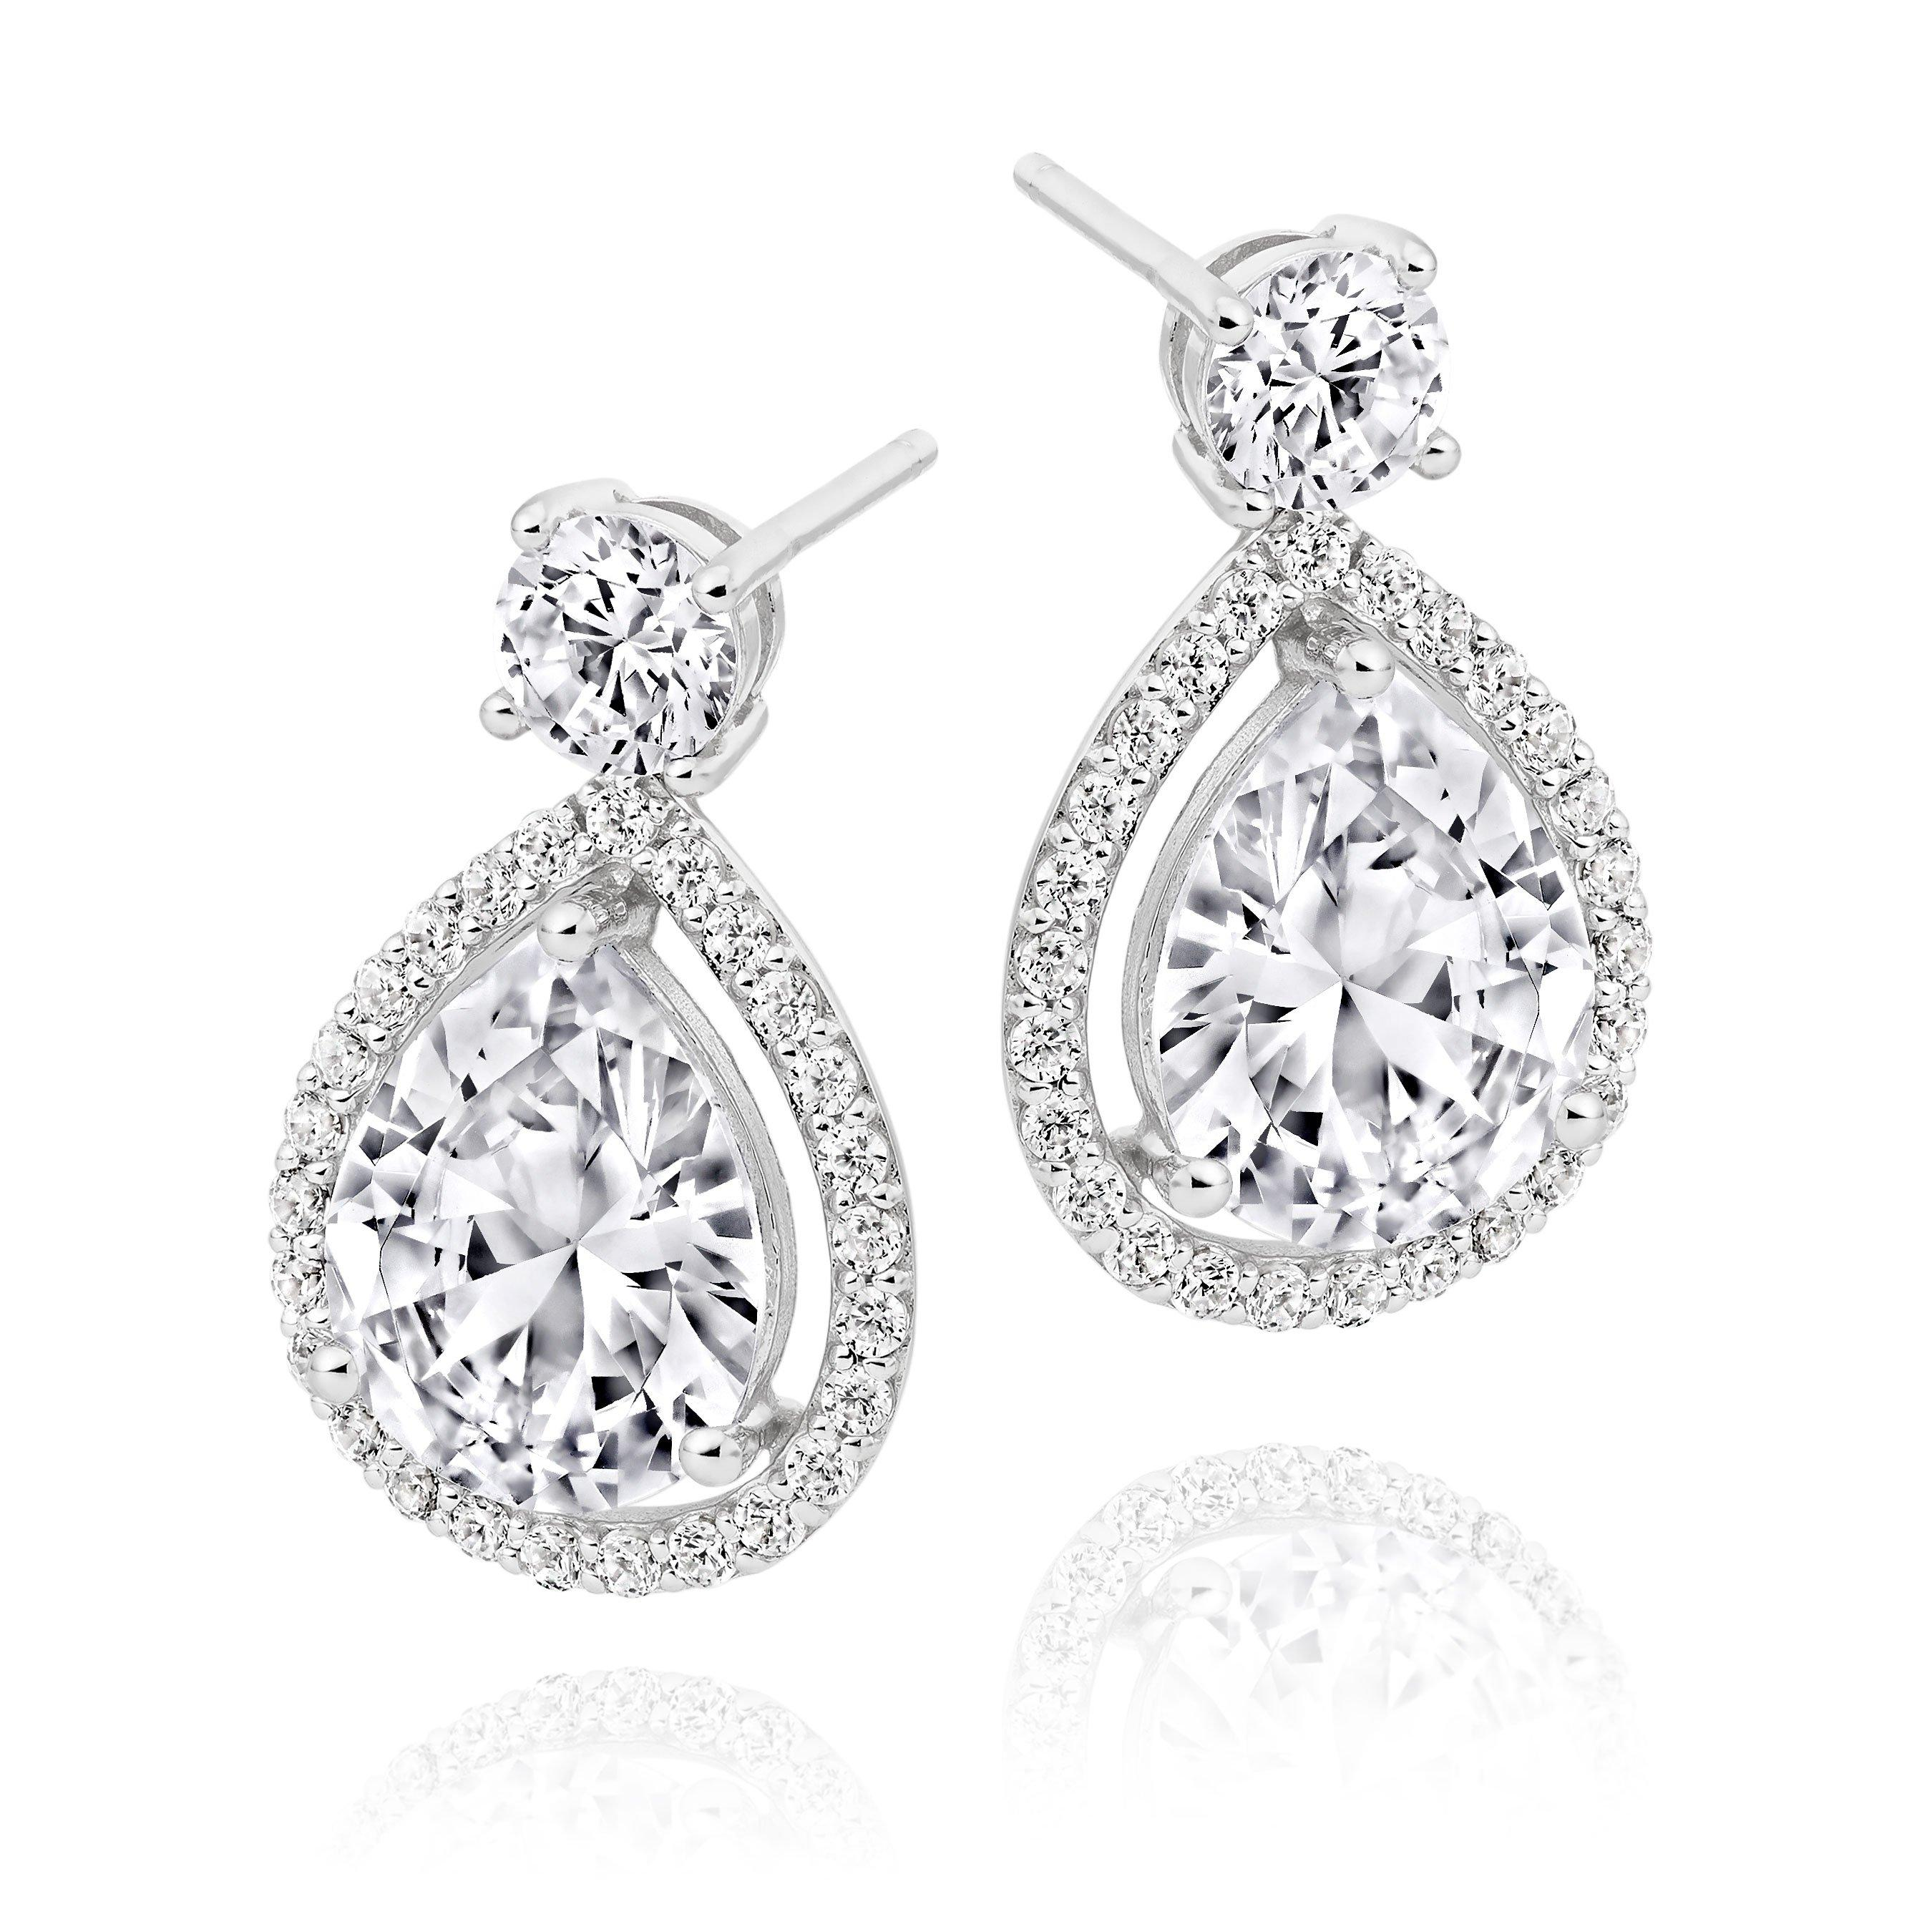 9ct White Gold Cubic Zirconia Pear Drop Earrings